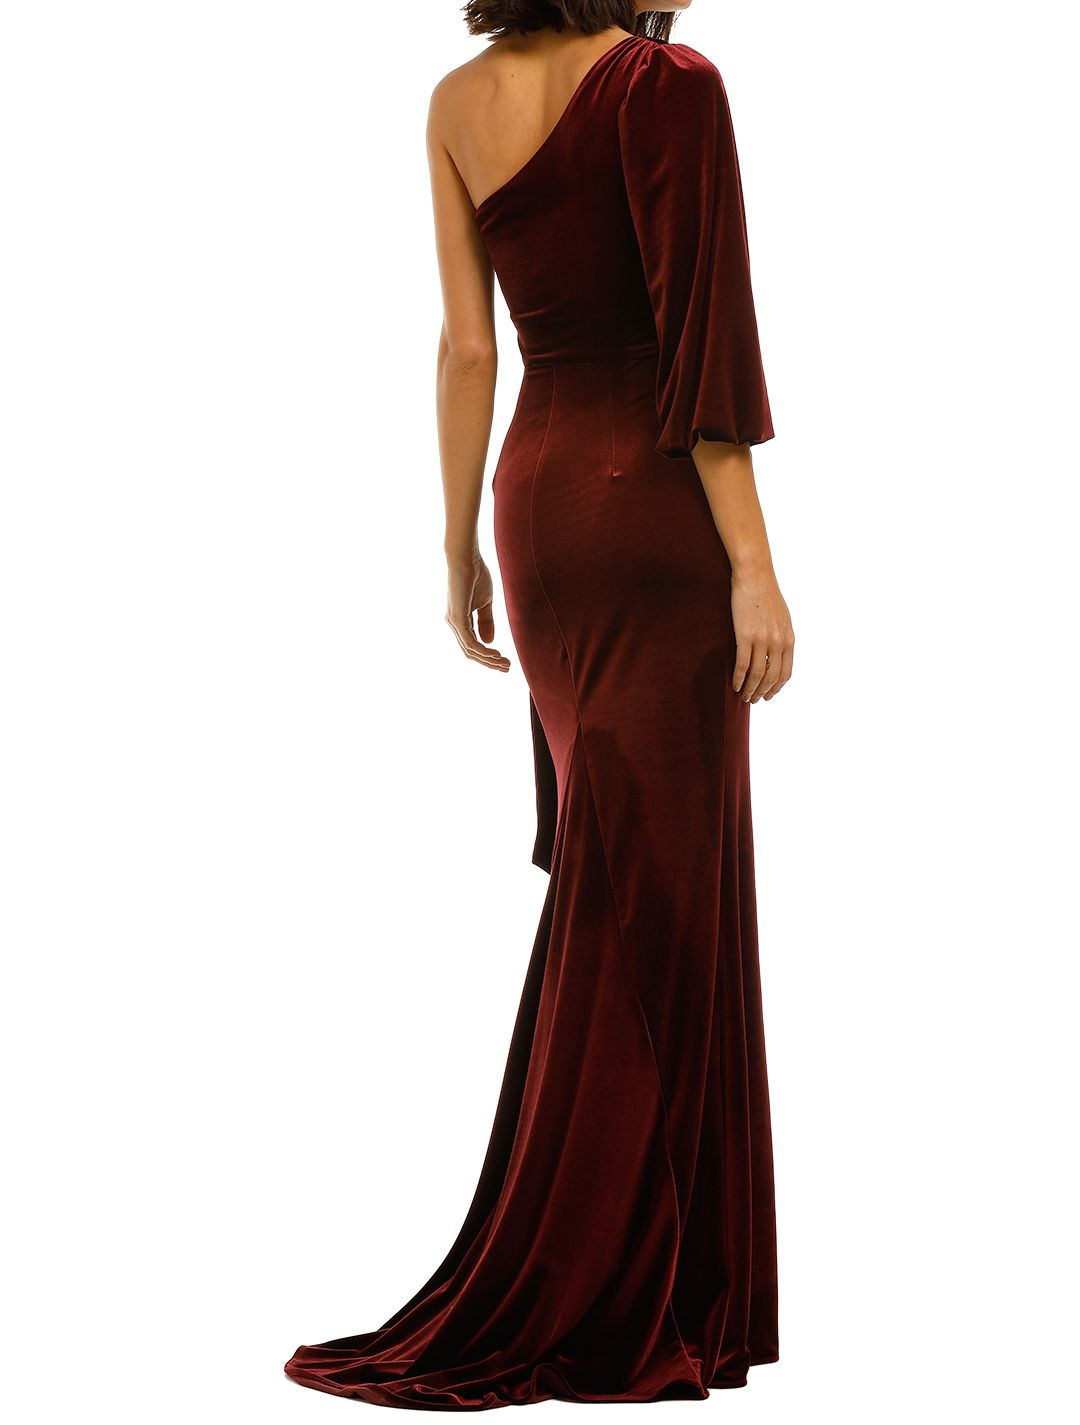 Love-Honor-Rosalia-Velvet-Gown-Wine-BAck